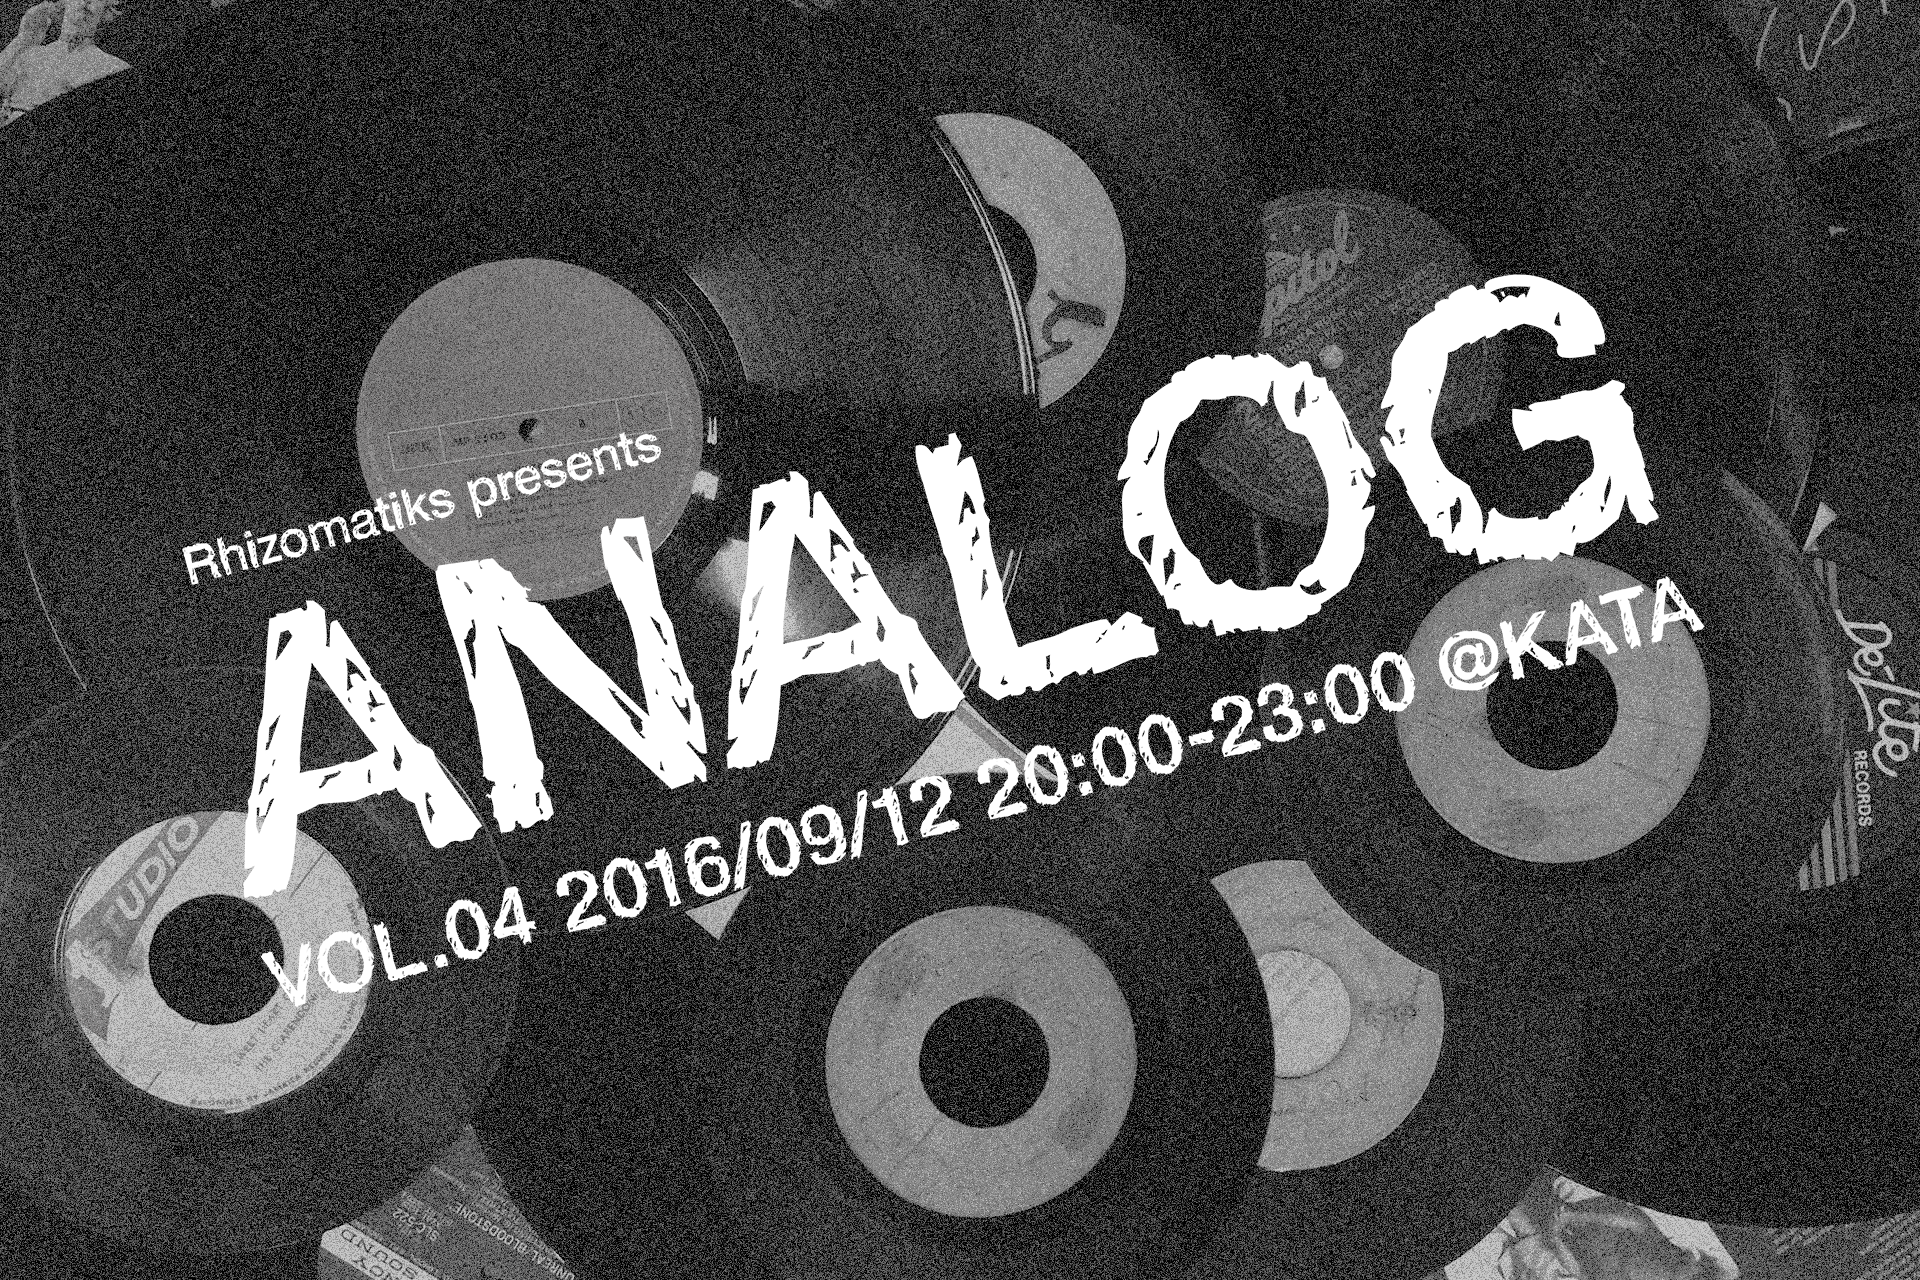 Rhizomatiks Presents 「ANALOG」 vol.04